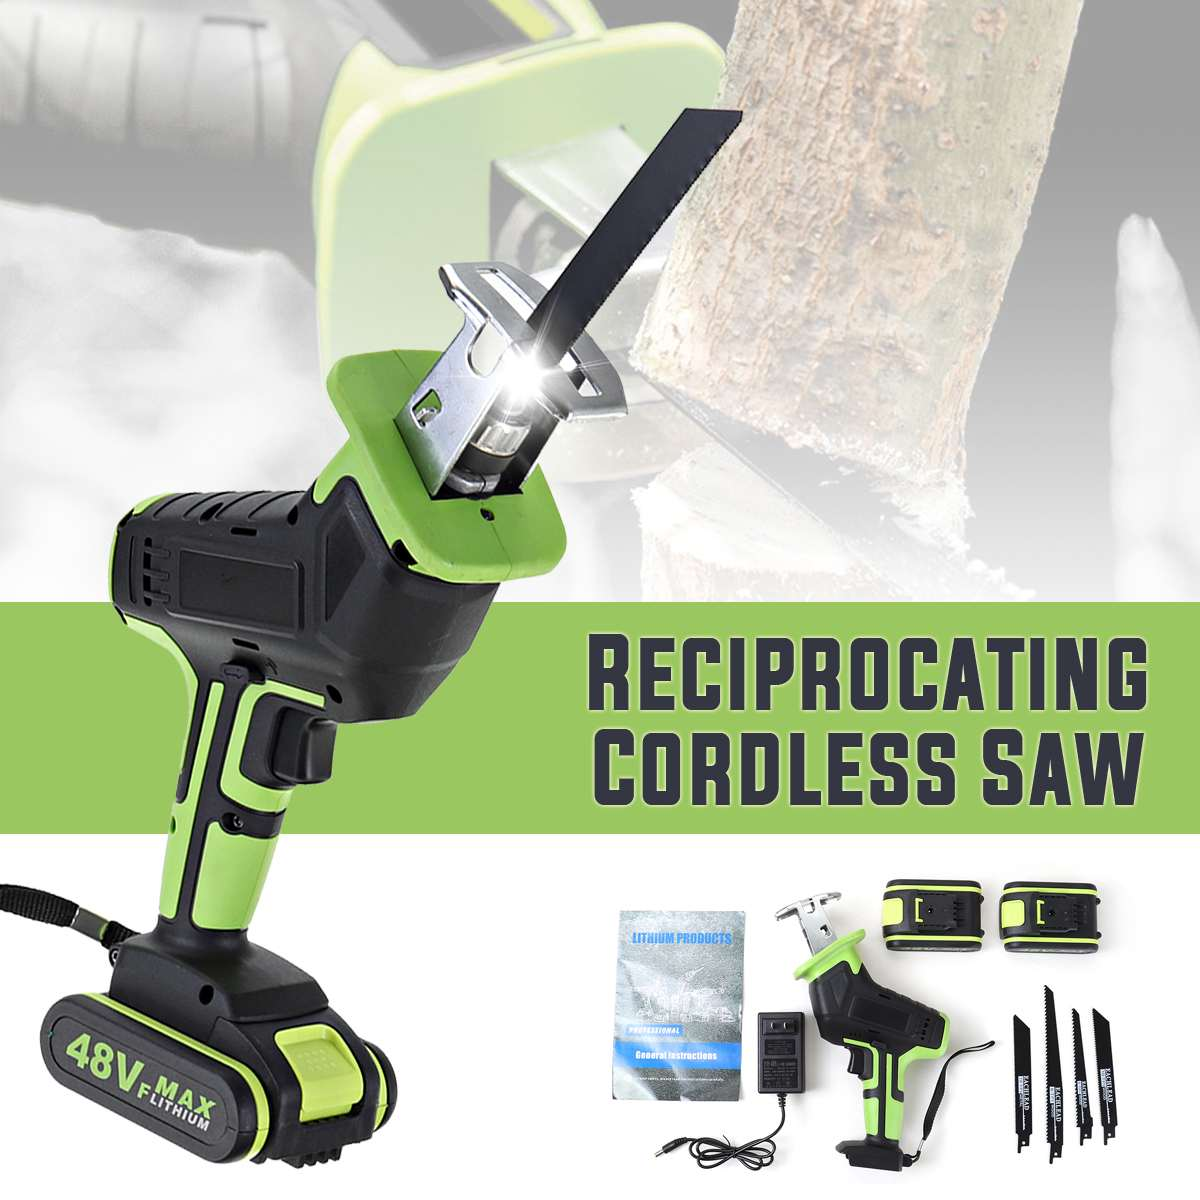 Drillpro 24V Cordless Reciprocating Saw +4 Saw Blades Metal Cutting Wood Tool Portable Woodworking Cutters With 1/2 Battery